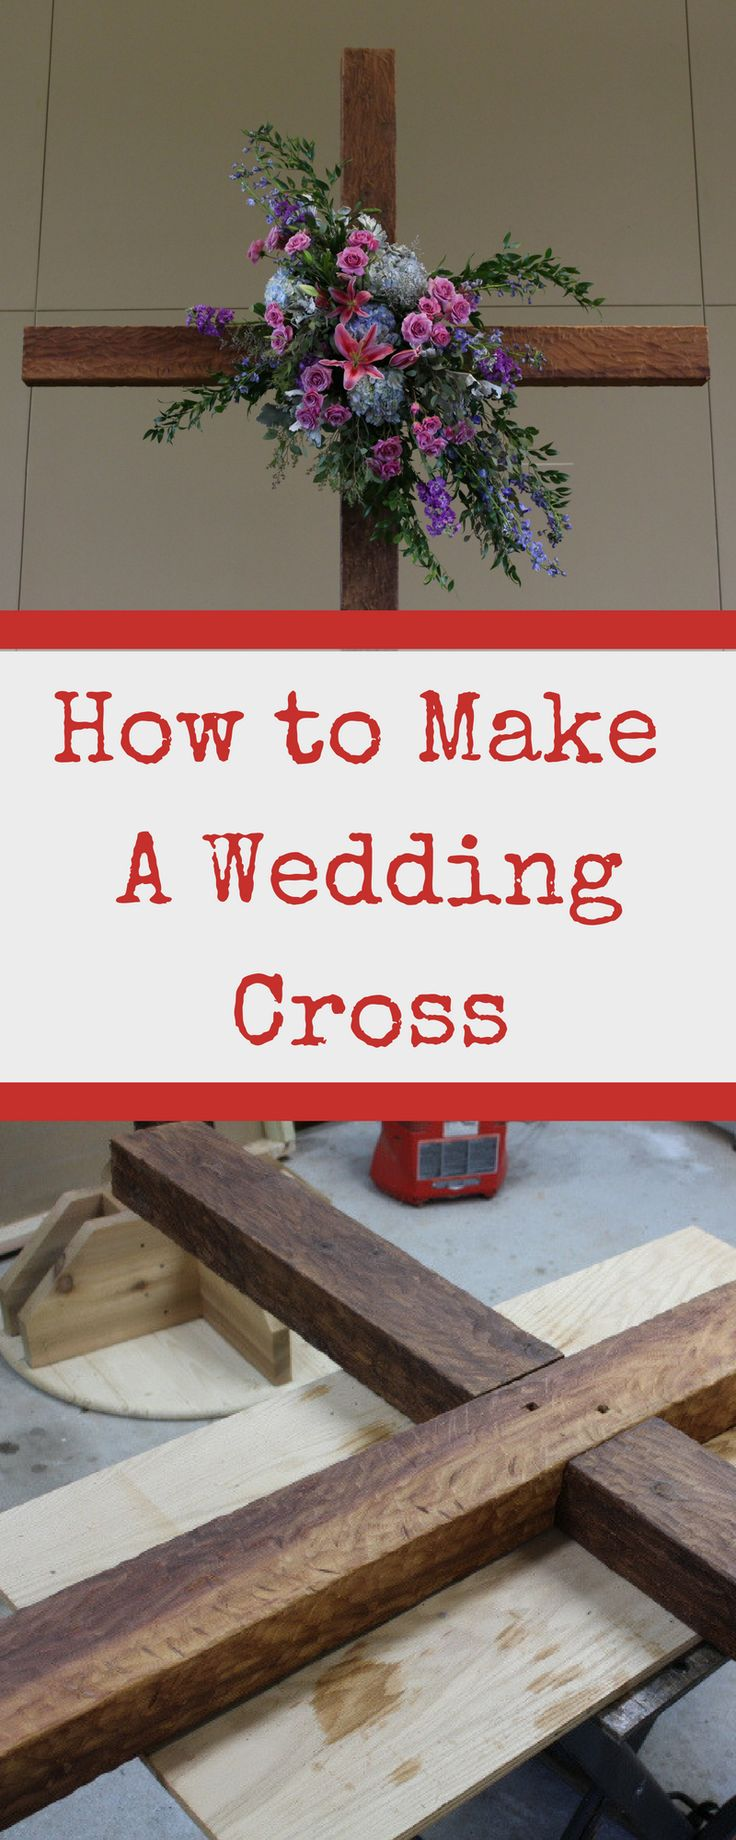 DIY Woodworking Ideas This tutorial and video will show you how to make a wedding cross. Perhaps you h...